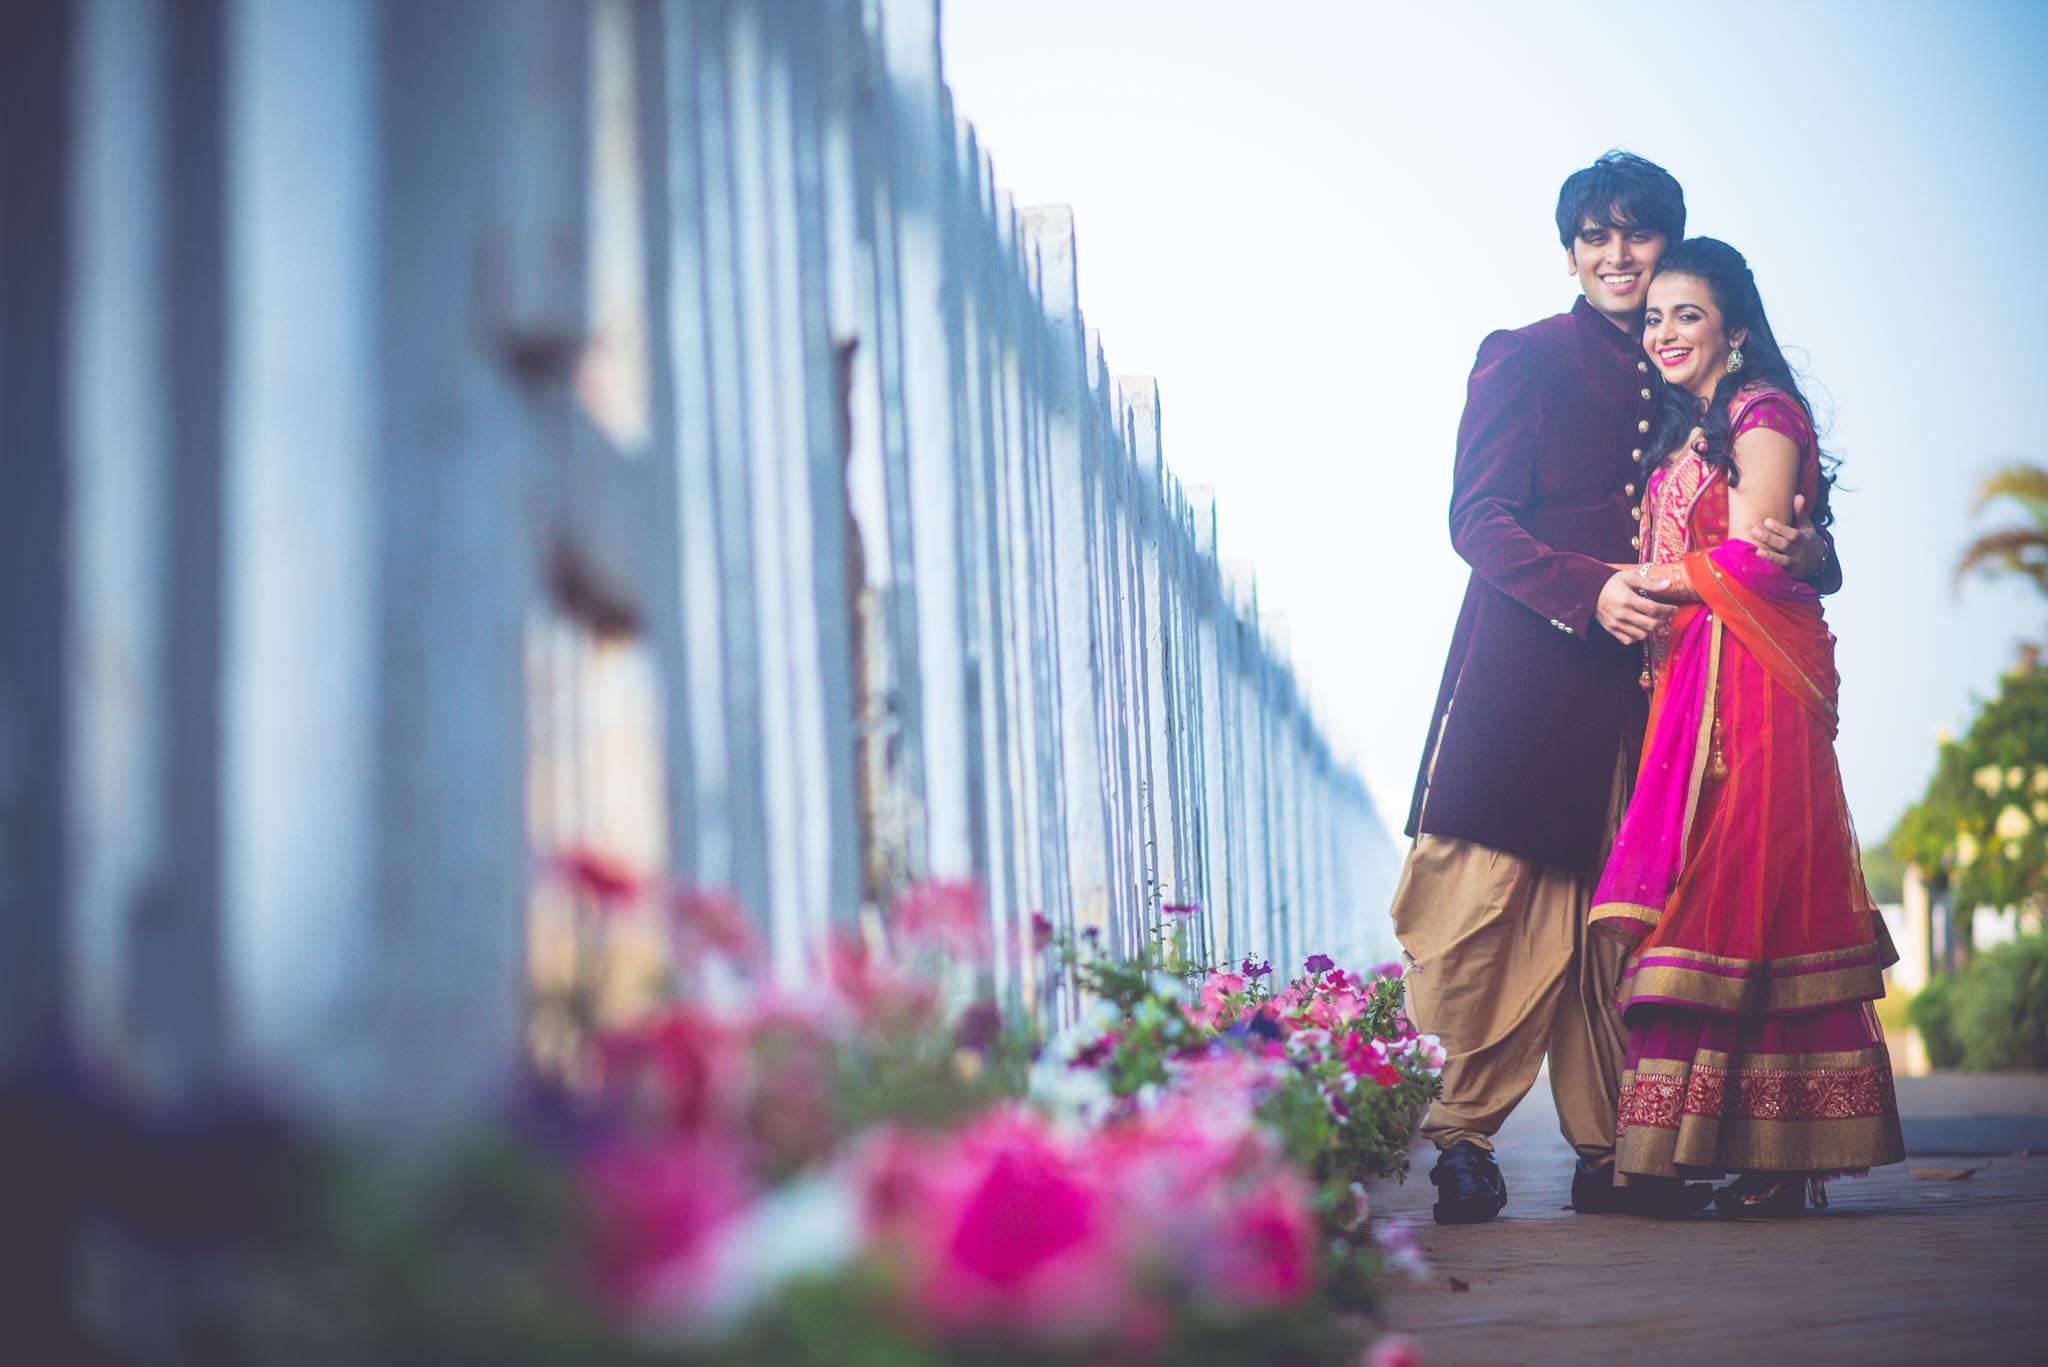 mumbai-candid-photography-wedding-whatknot-kamal-amrohi-studios-1